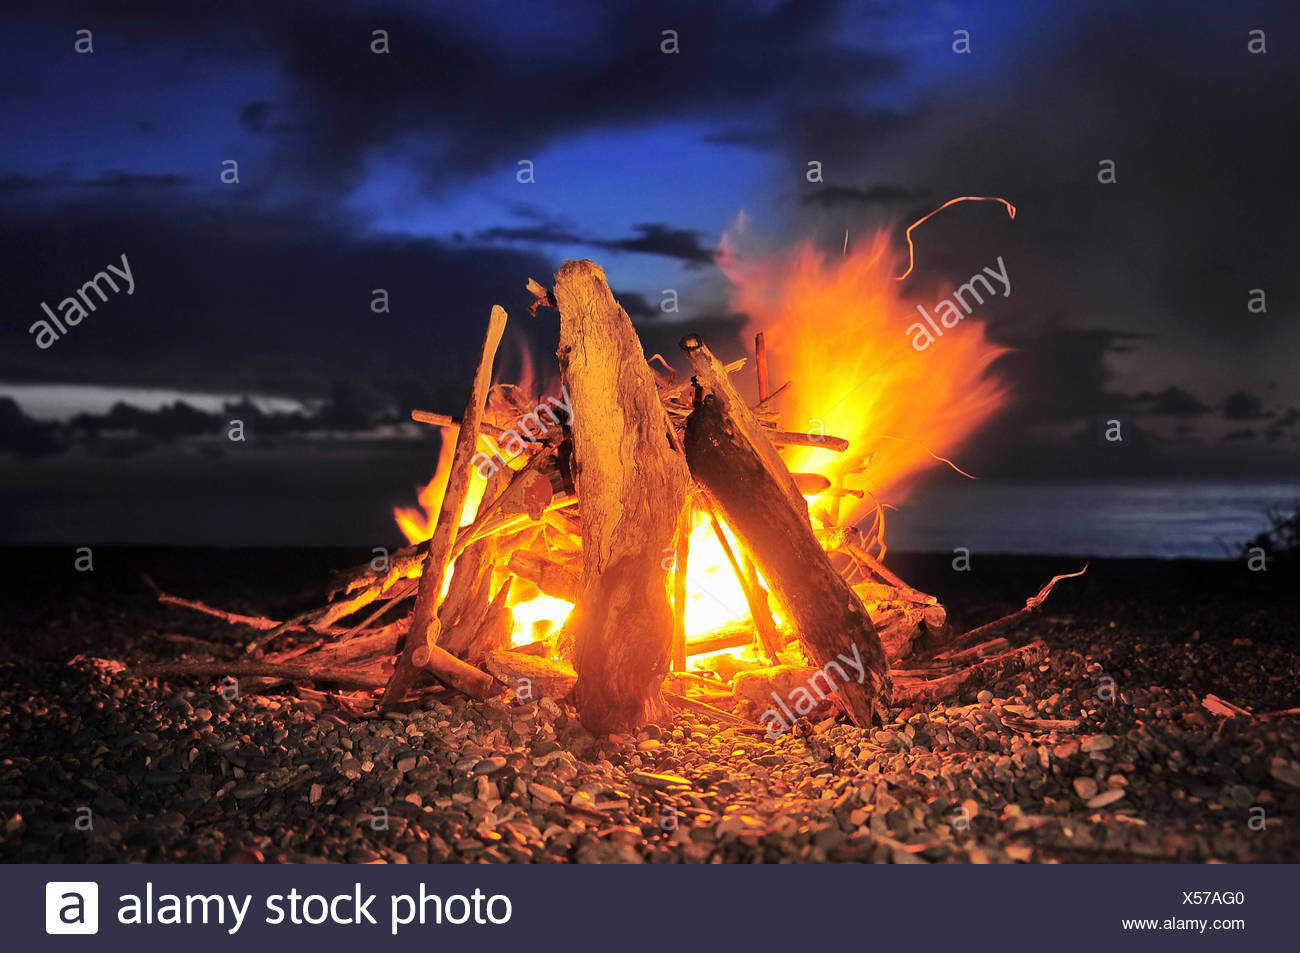 A log fire lit in an open space, with leaping flames and glowing wood and embers. - Stock Image